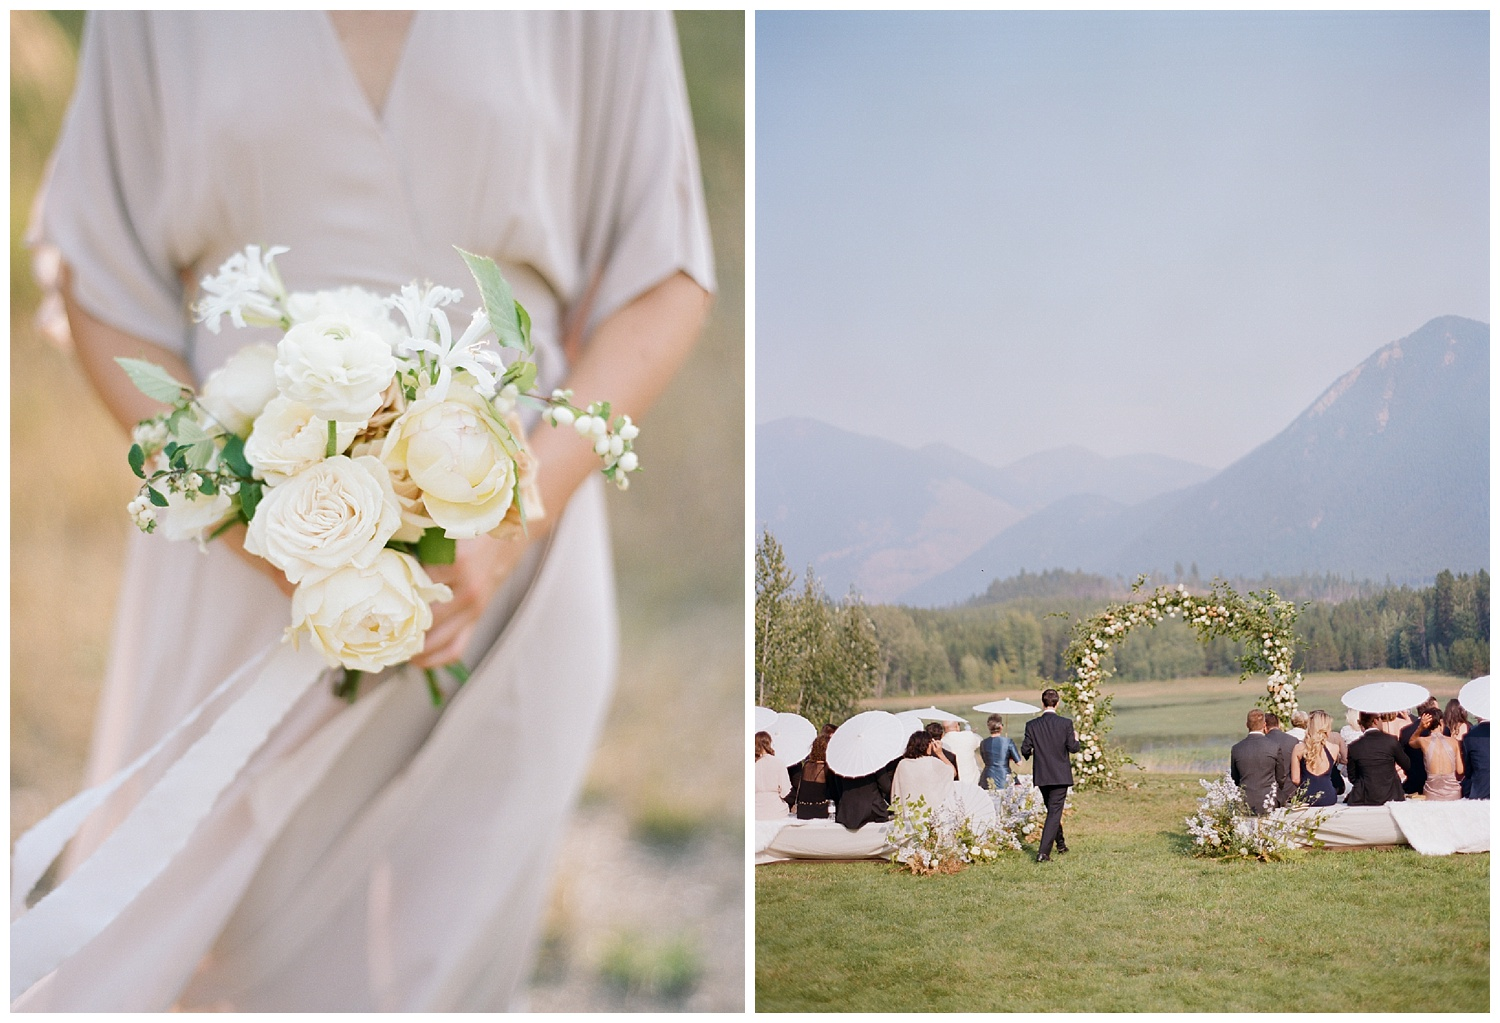 Guests with parasols arrive for the Glacier National Park wedding ceremony; Sylvie Gil Photography